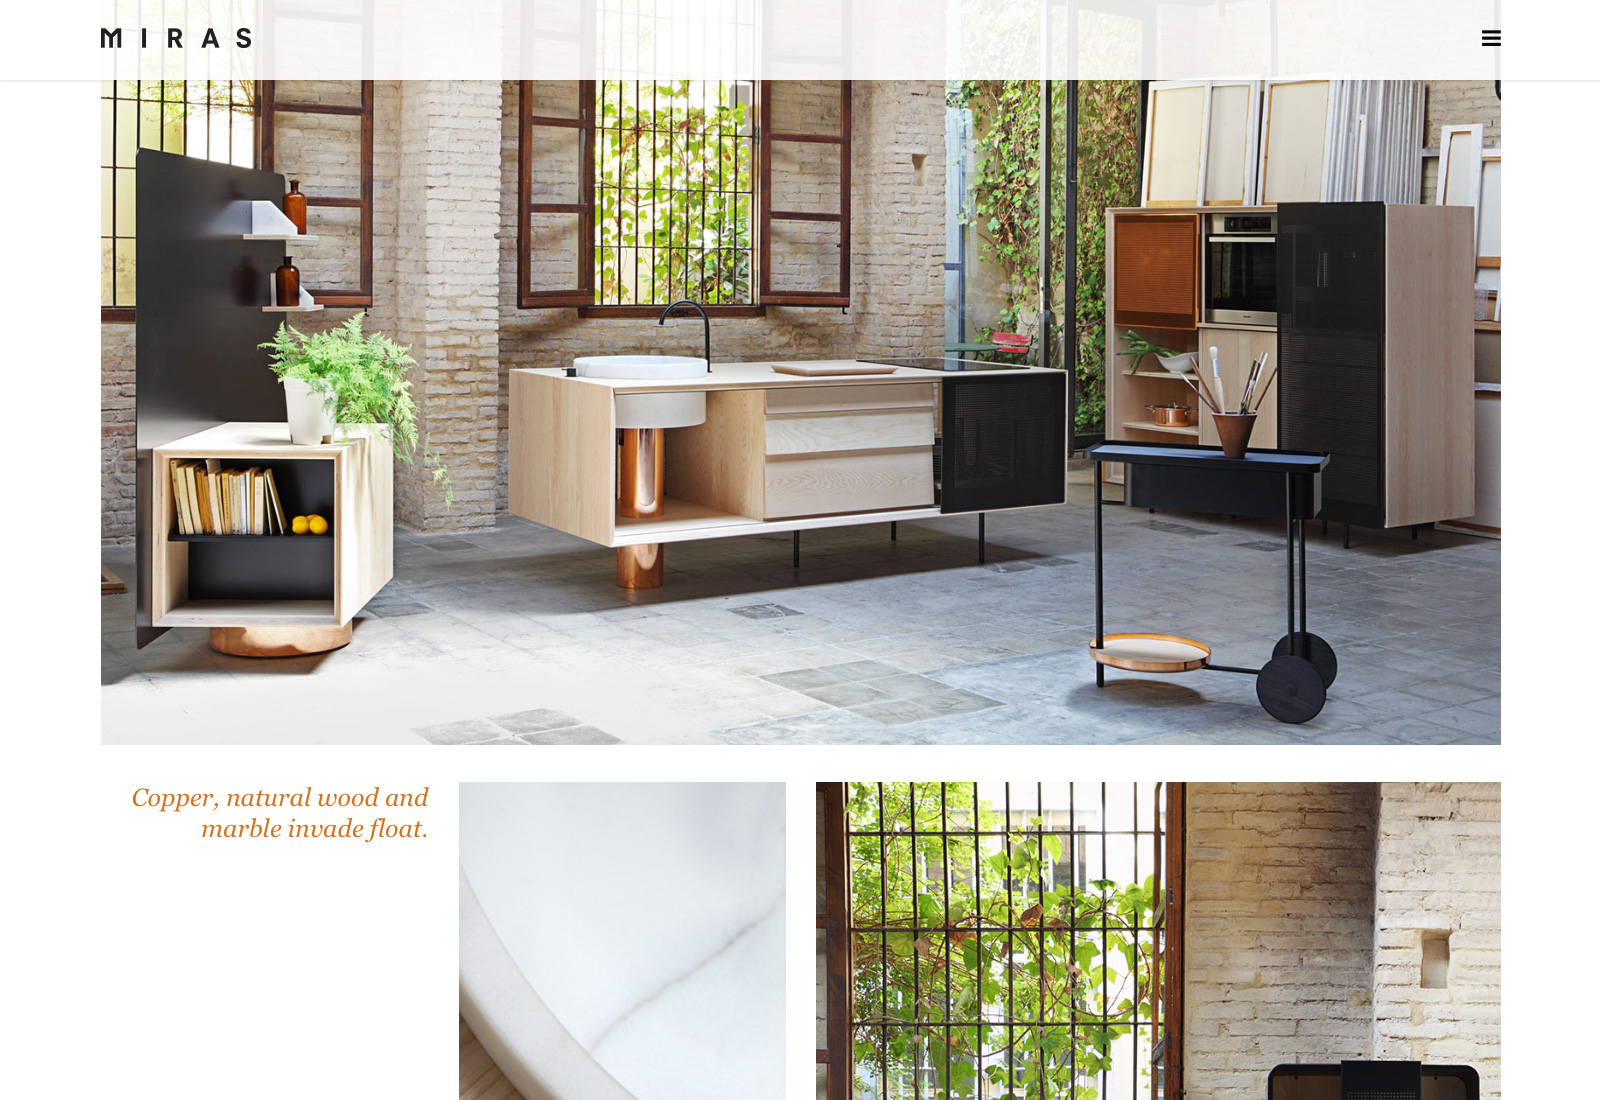 Float - A kitchen designed by Mut Design for Miras Editions